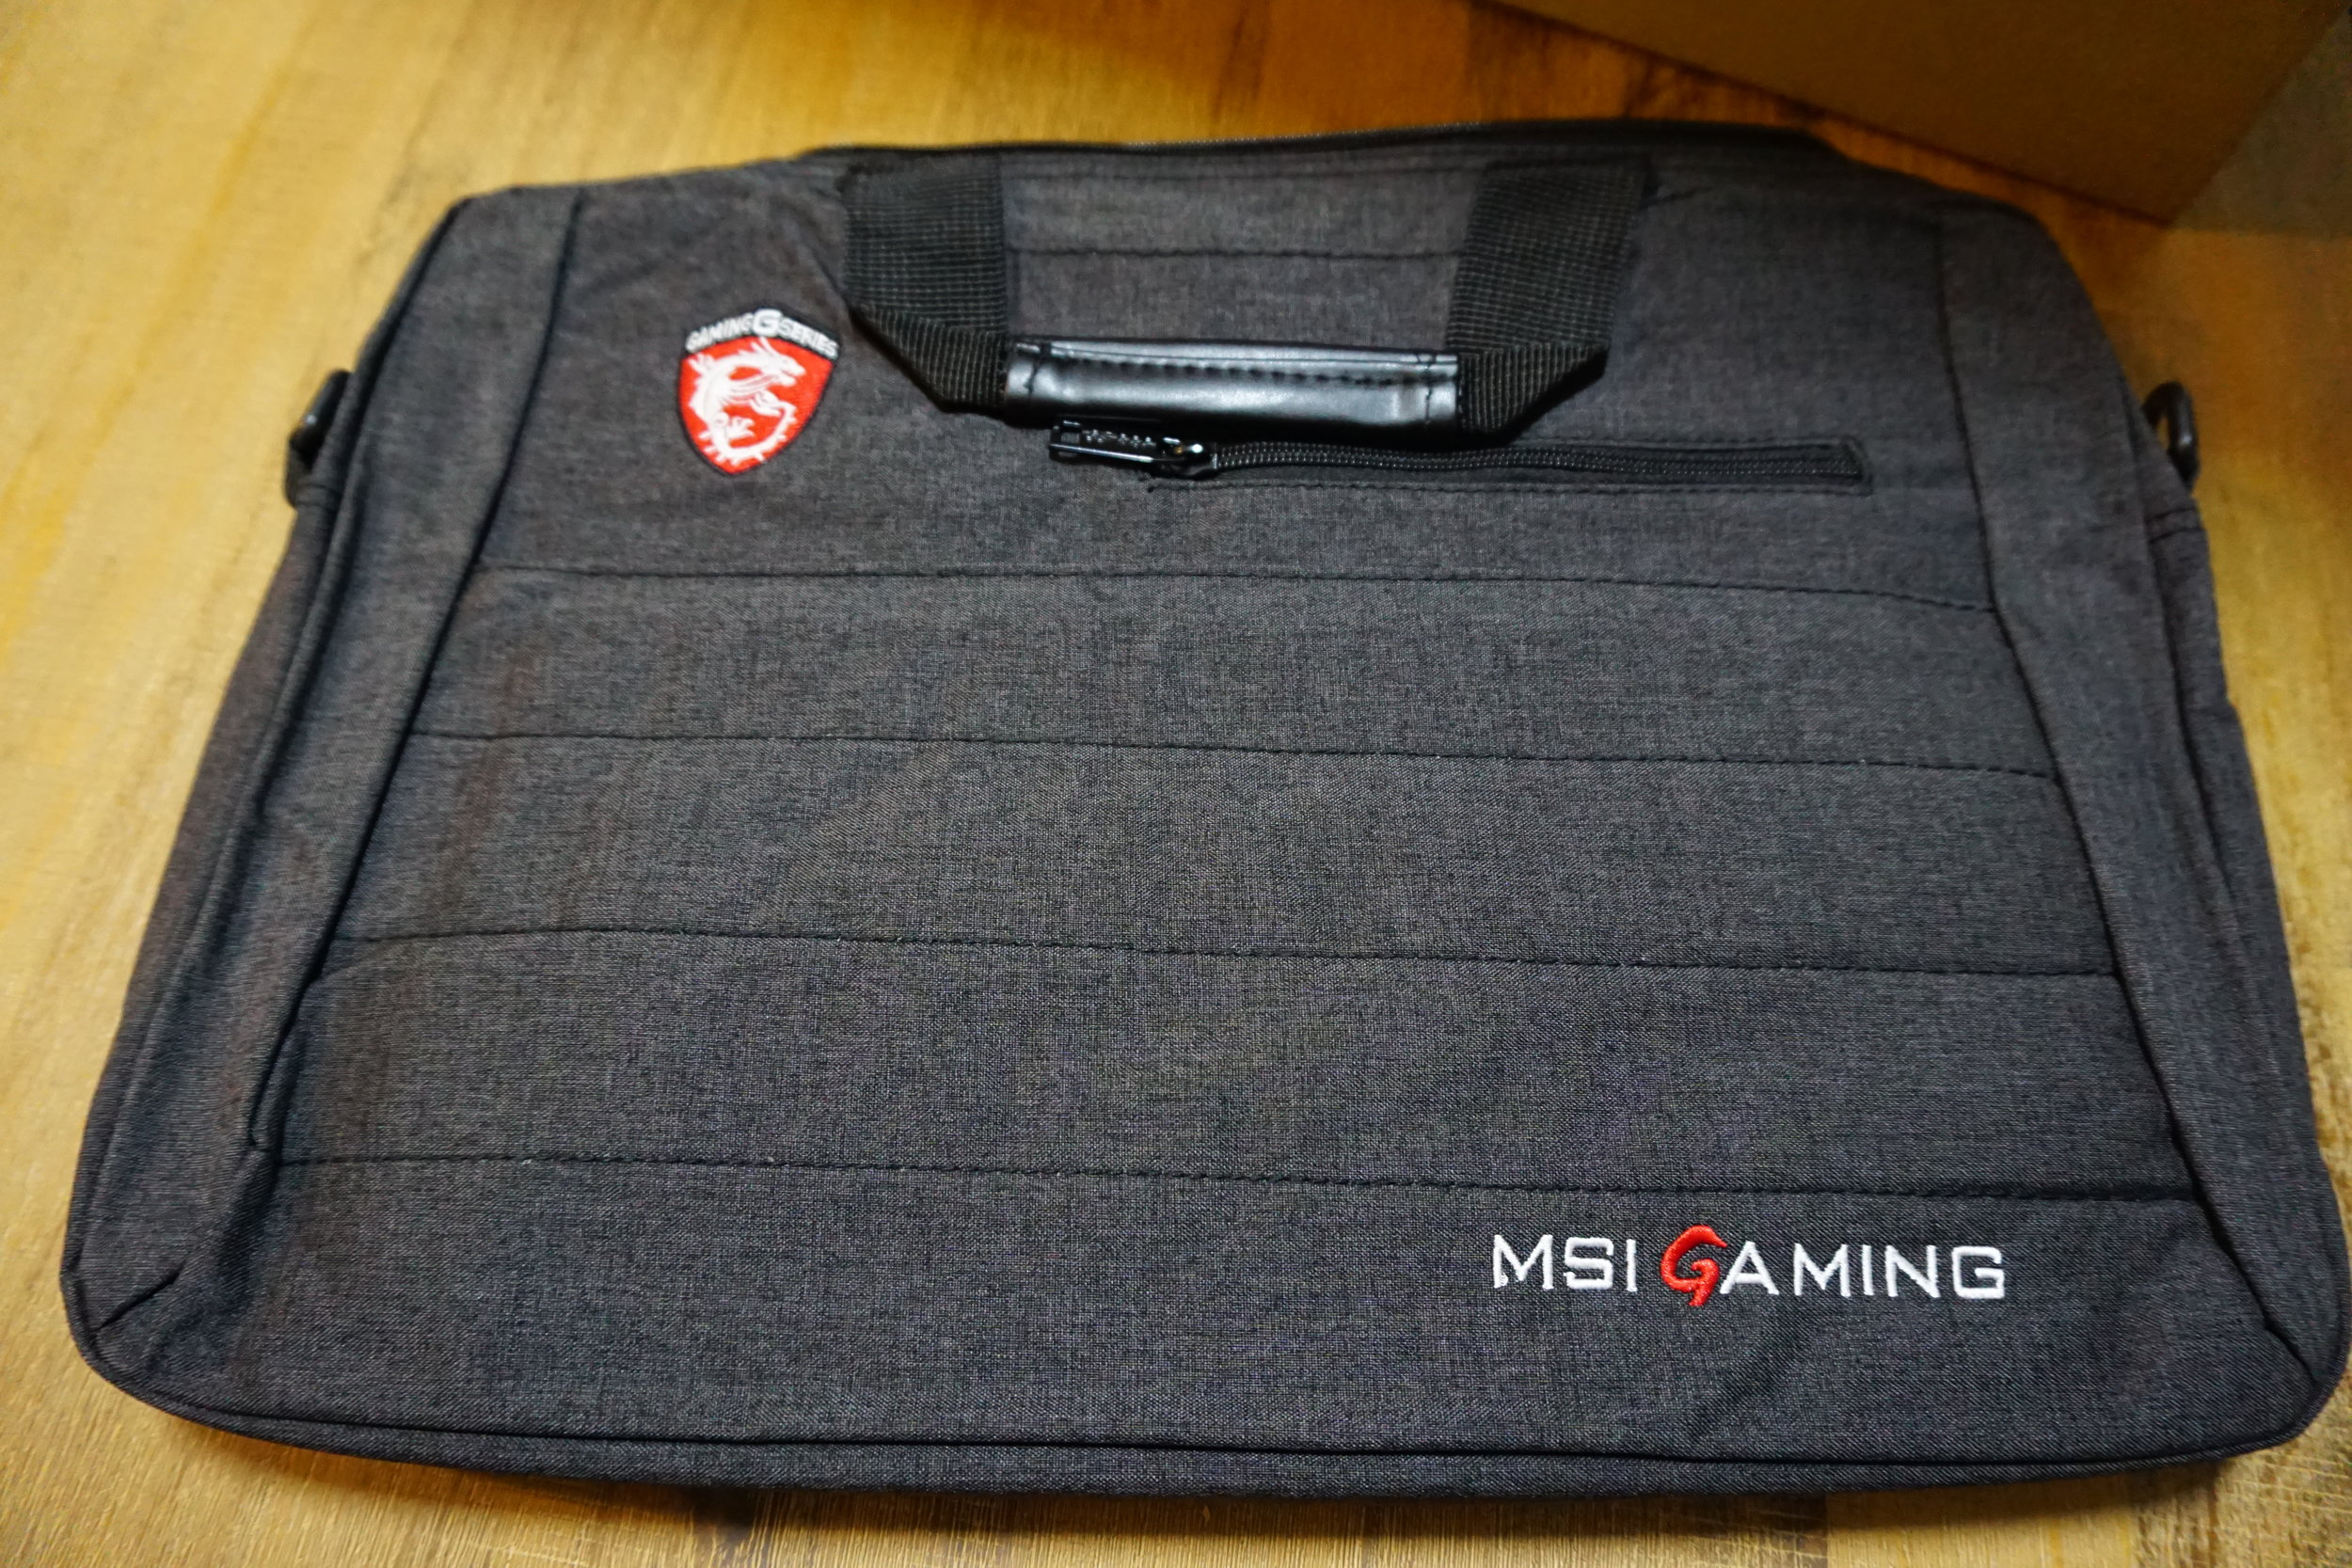 It also comes with a fairly well made dark grey carrying bag.